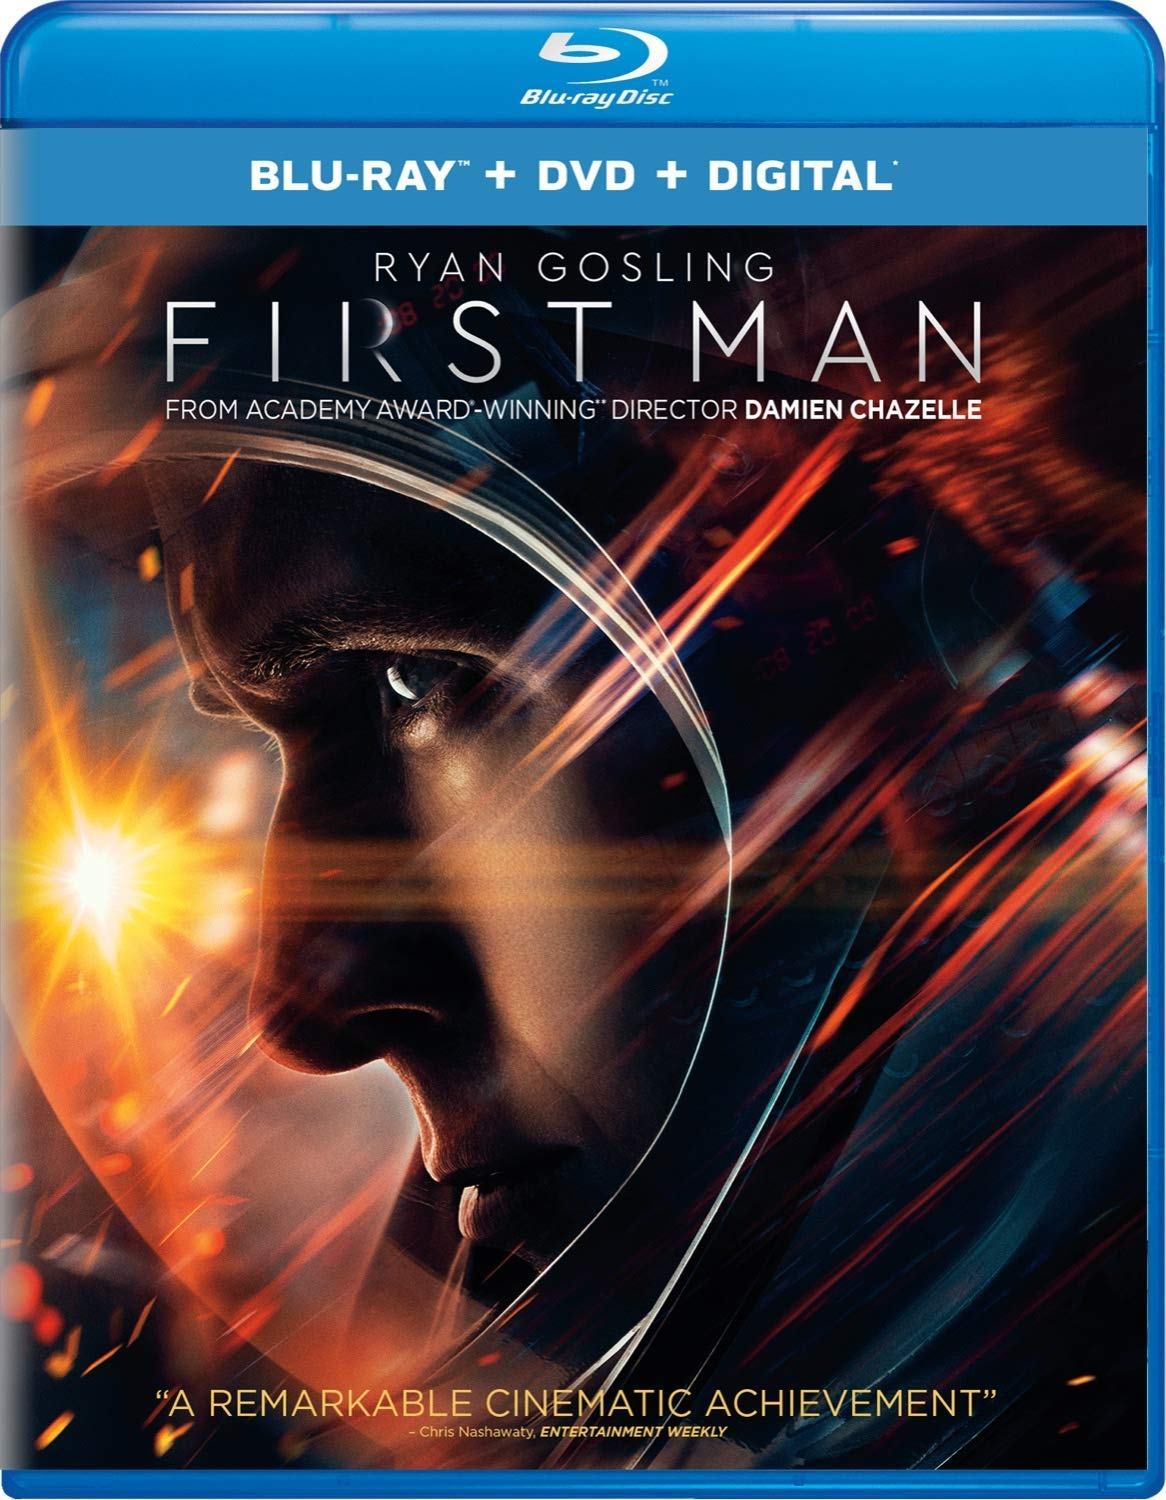 Blu-ray : First Man (With DVD, 2 Pack, Digital Copy)